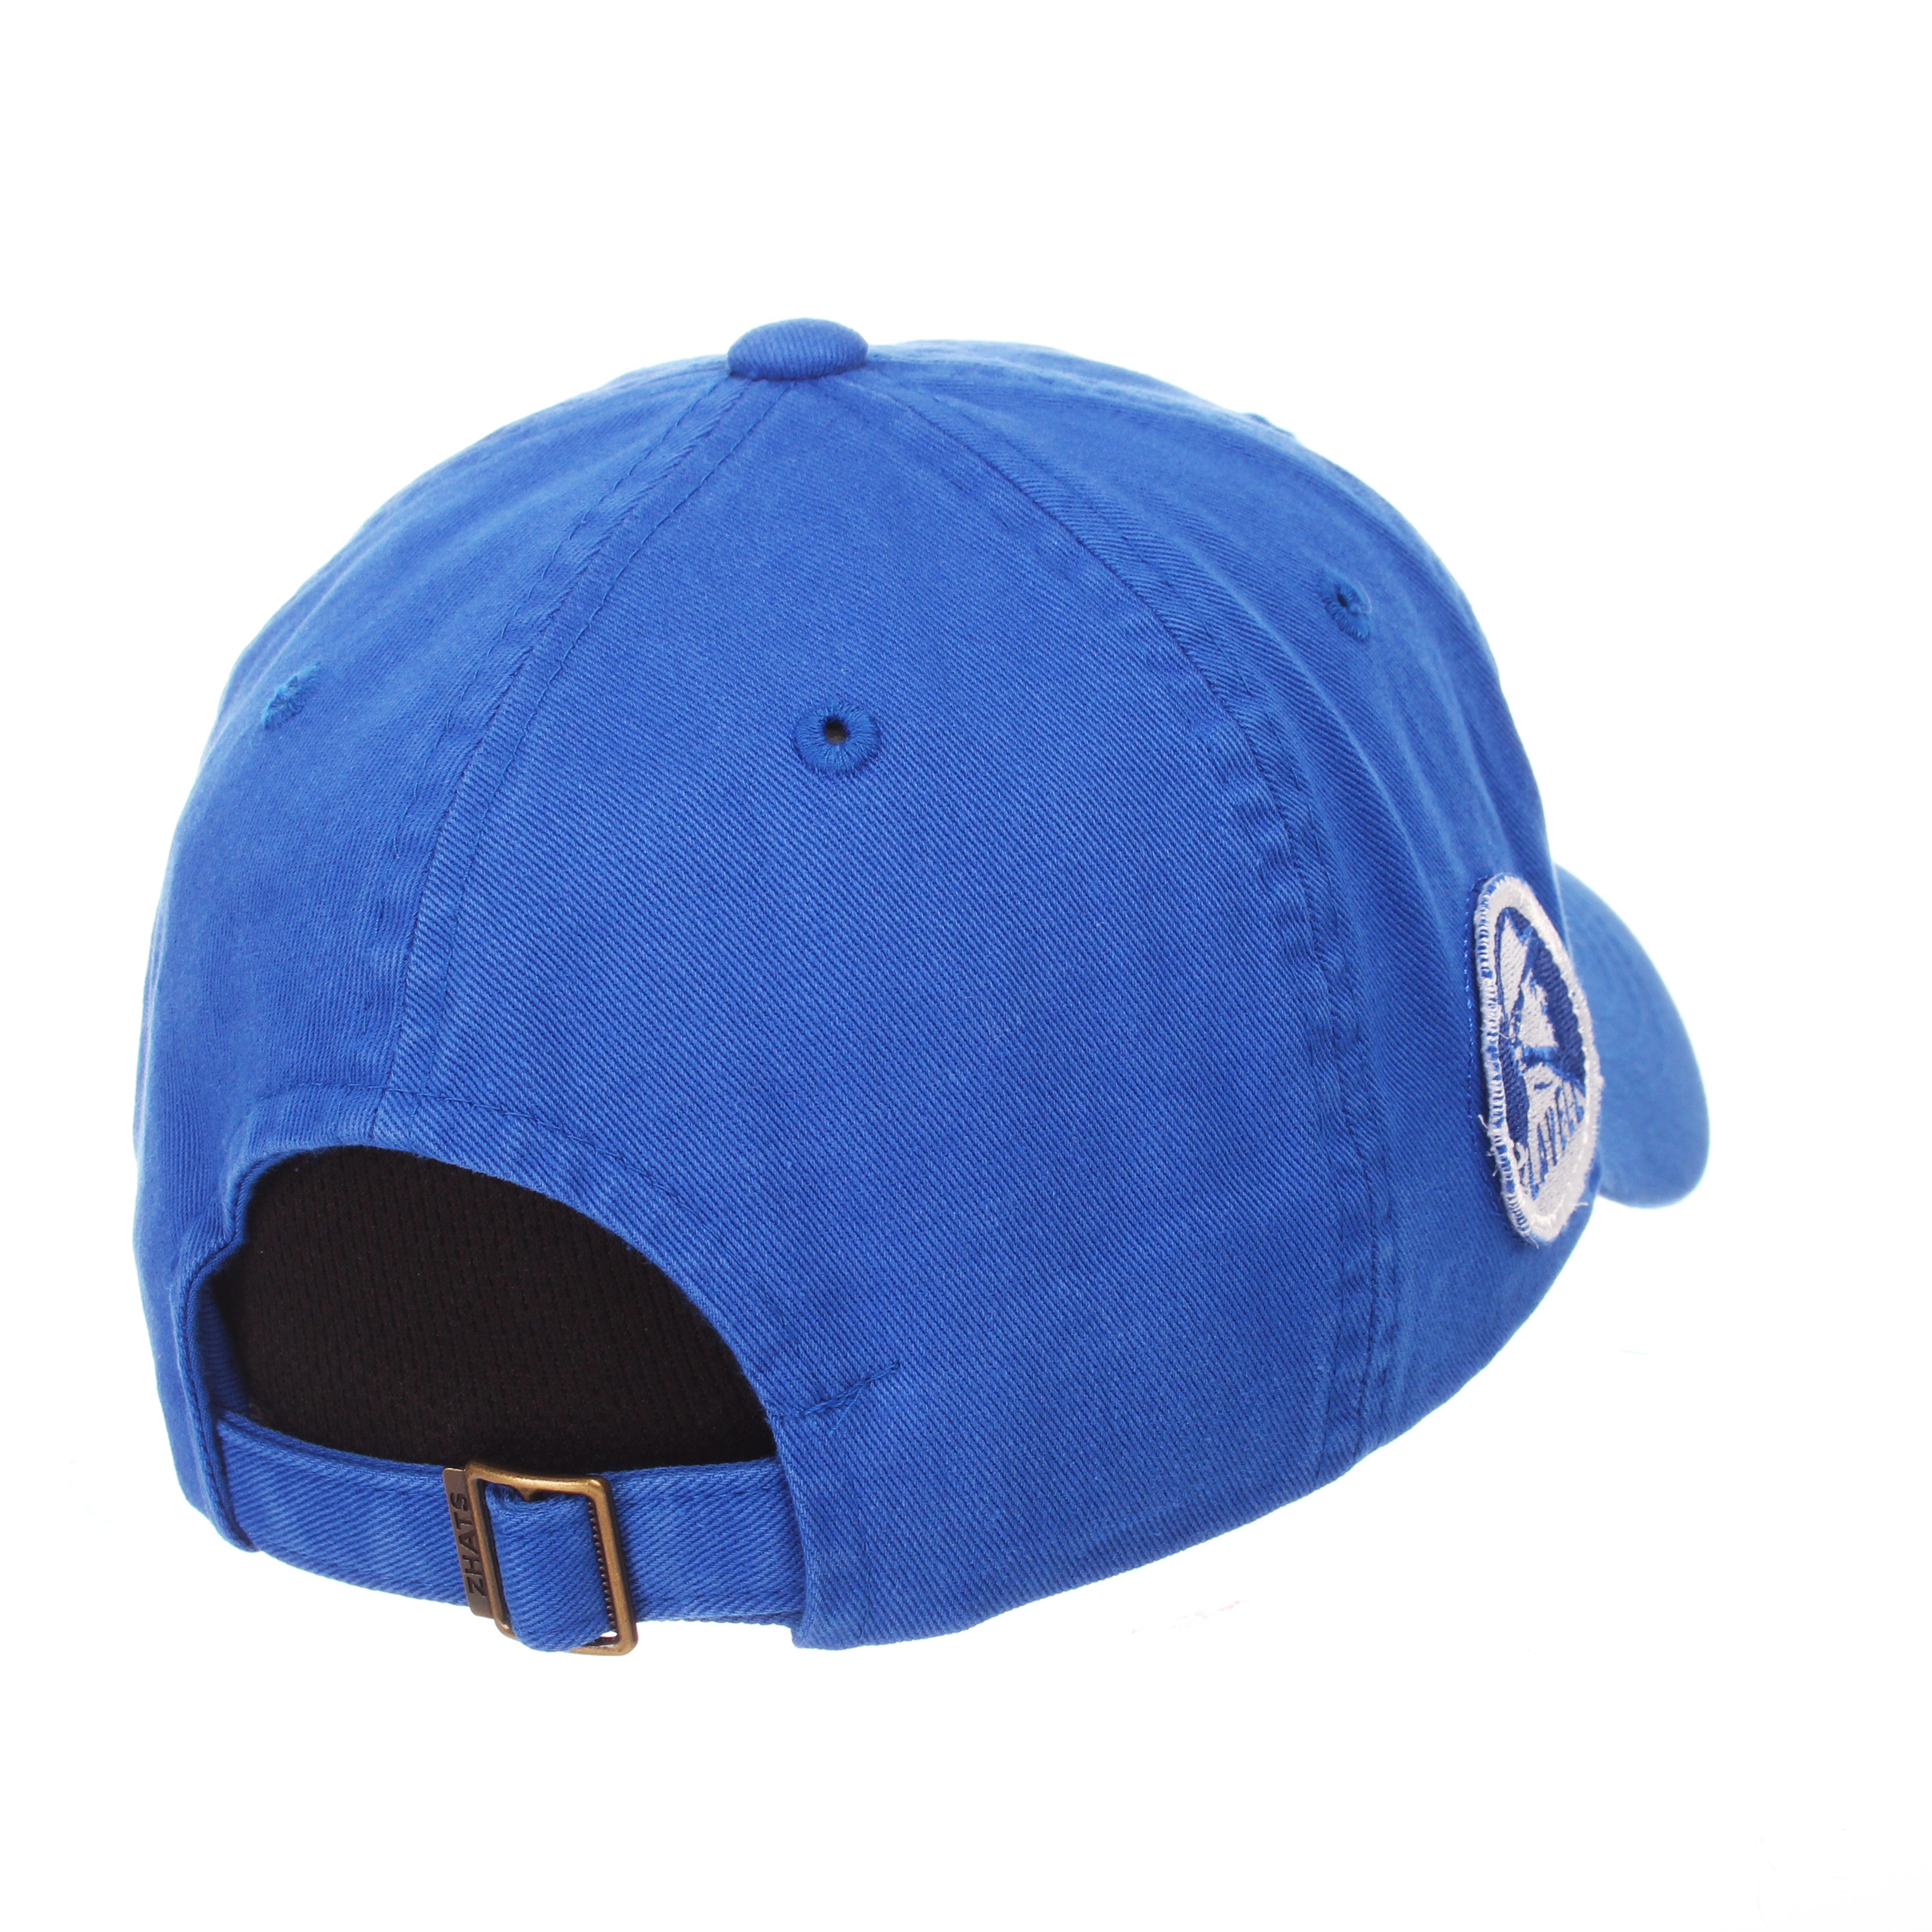 Brigham Young University Custom Unstructured (COUGAR/BYU) Royal Surf Washed Adjustable hats by Zephyr